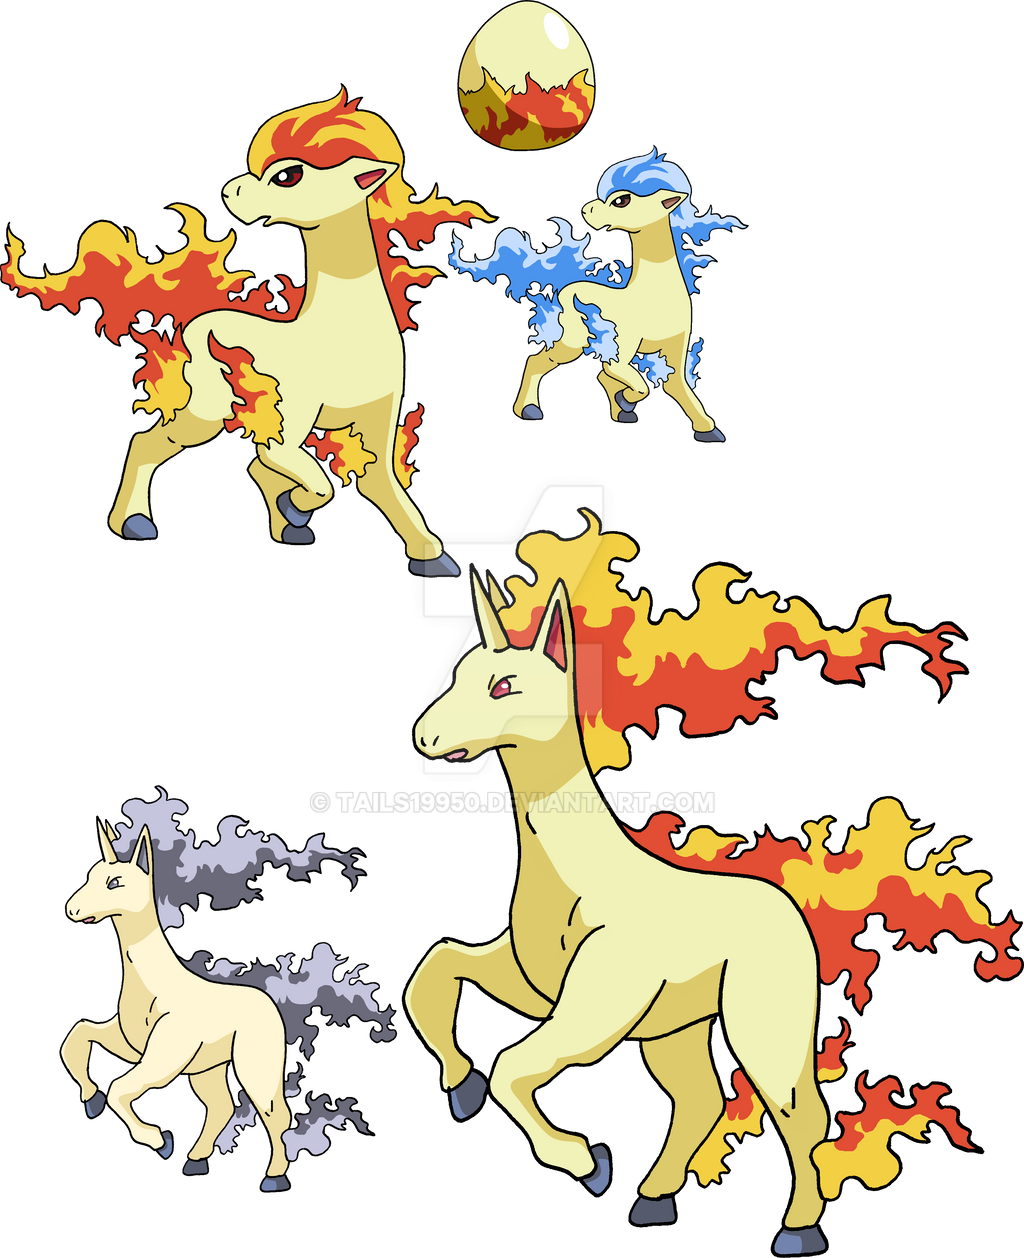 077 And 078 Ponyta Evolutionary Family By Tails19950 On